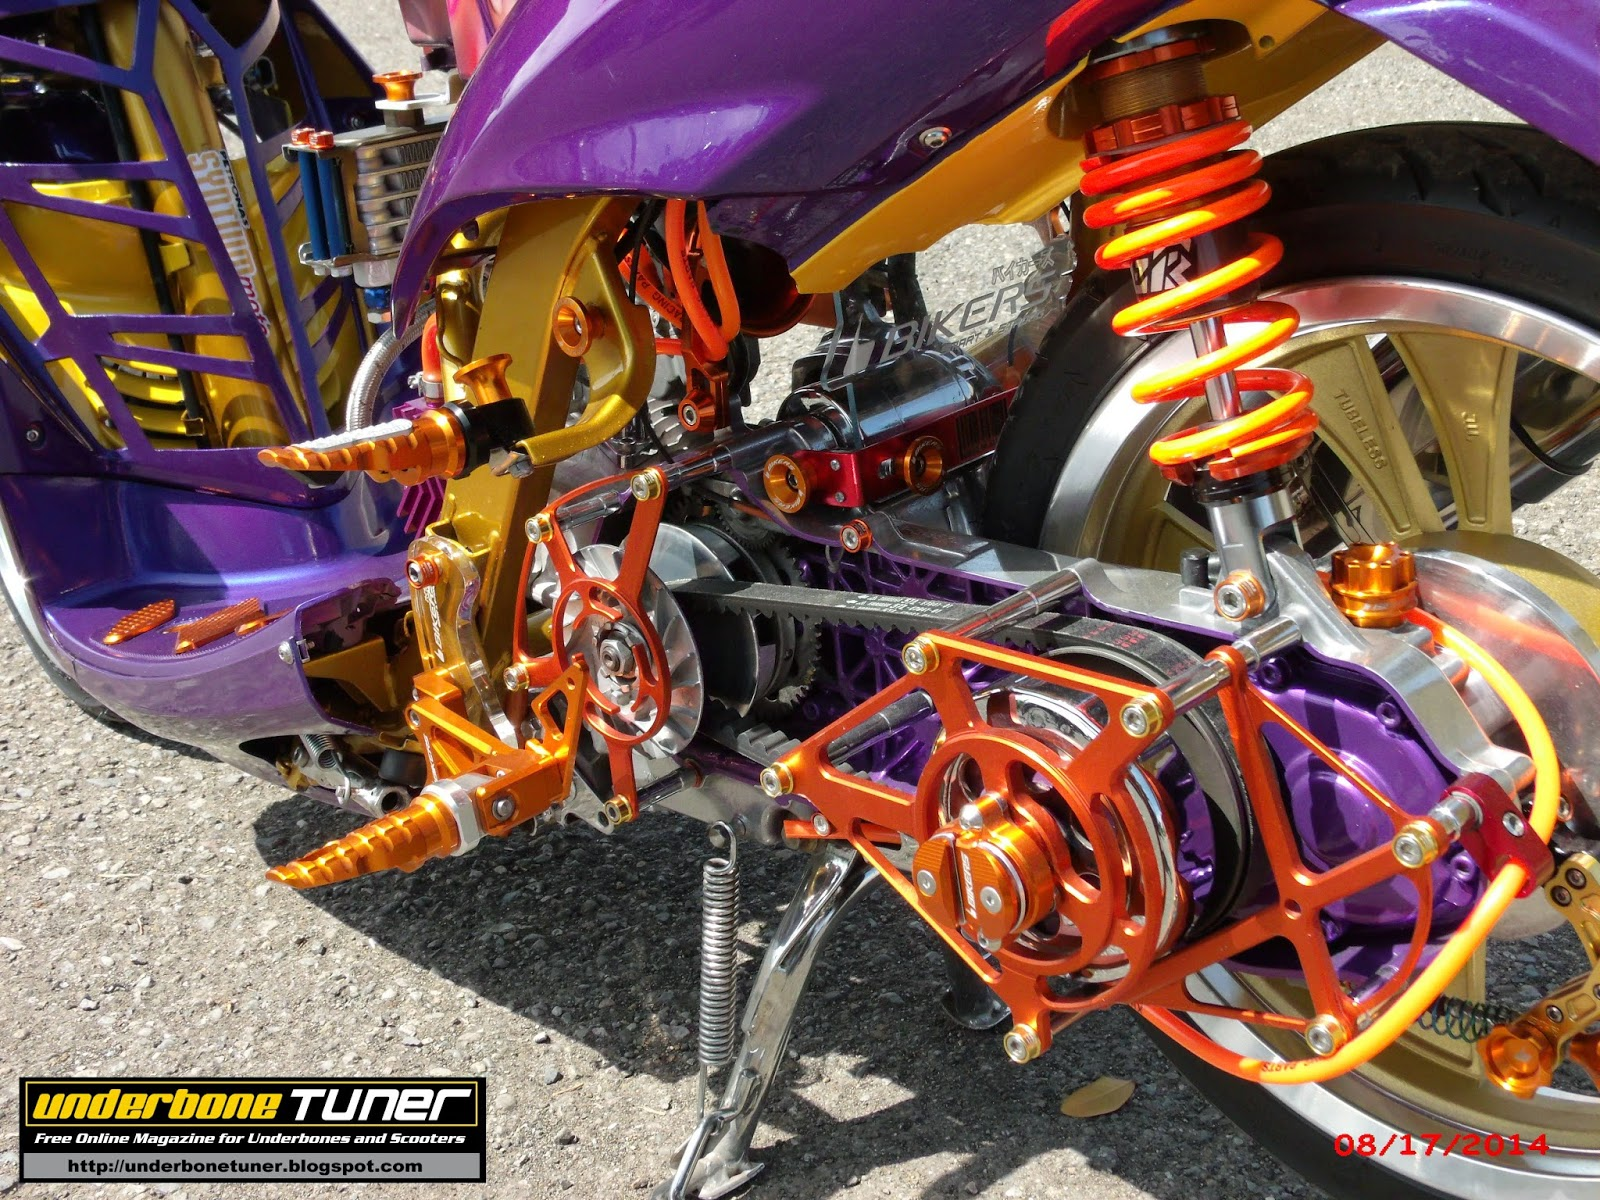 underbone tuner  scooter club modified yamaha mio amore